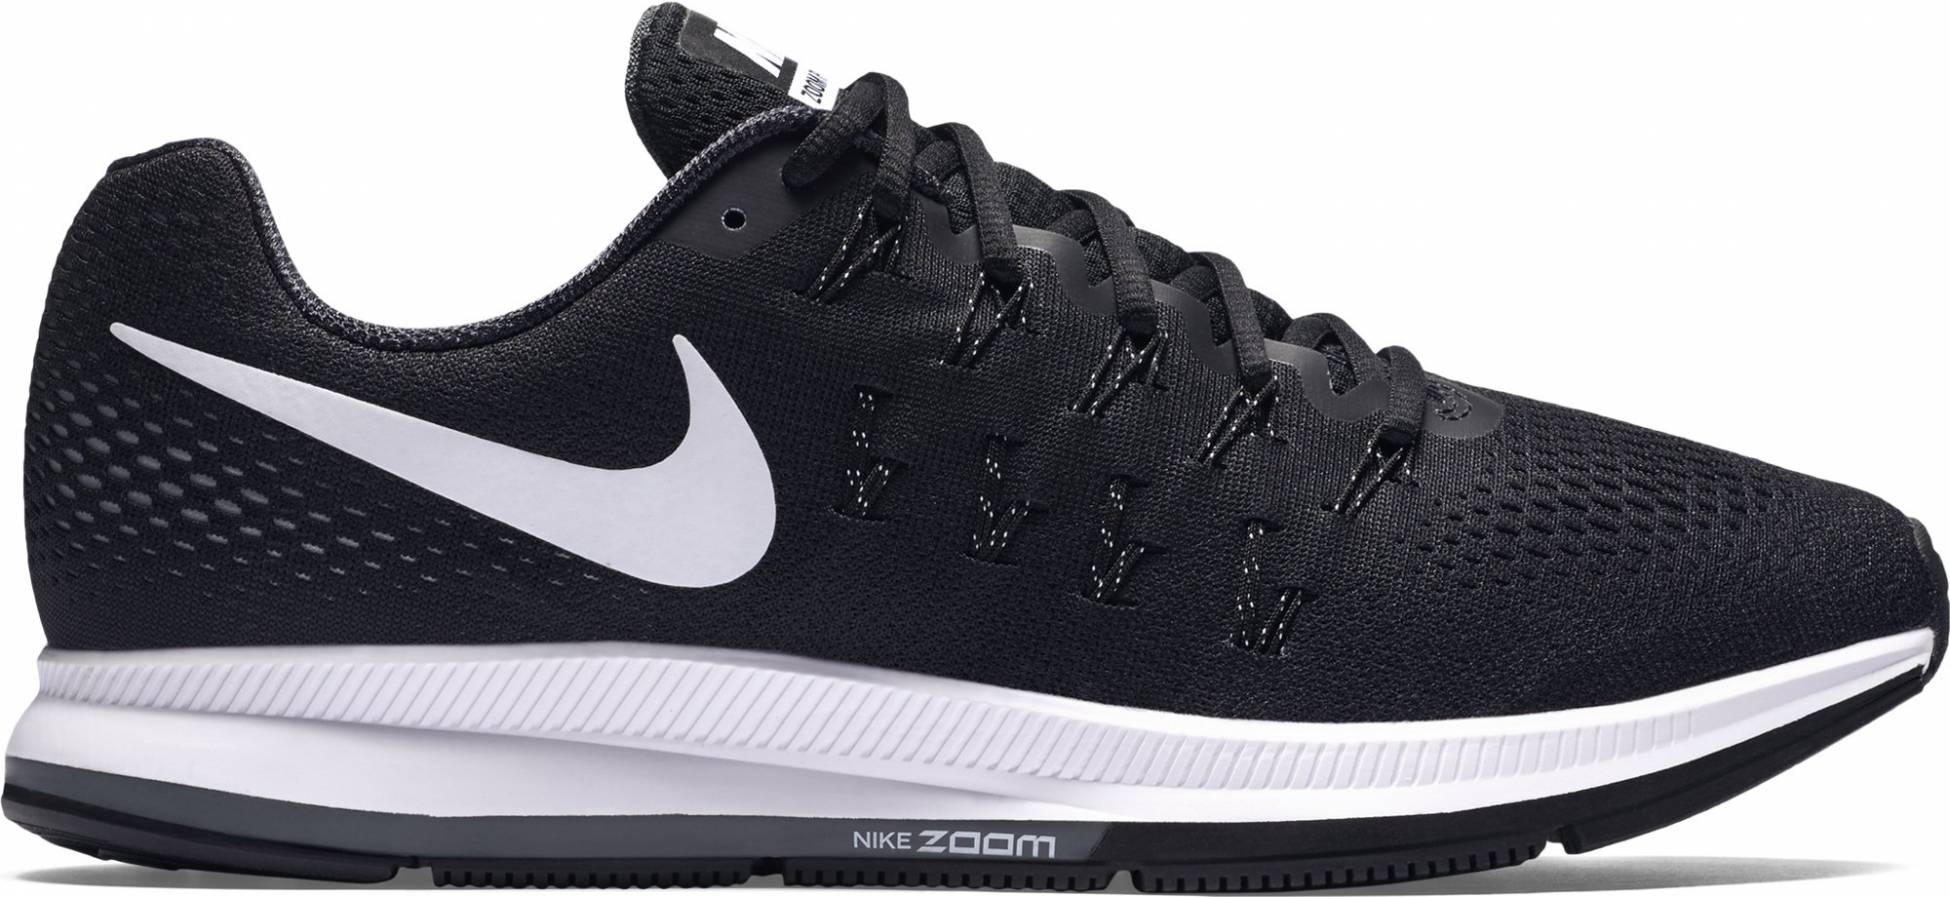 terremoto Suministro Minero  Nike Air Zoom Pegasus 33 - Deals, Facts, Reviews (2021) | RunRepeat